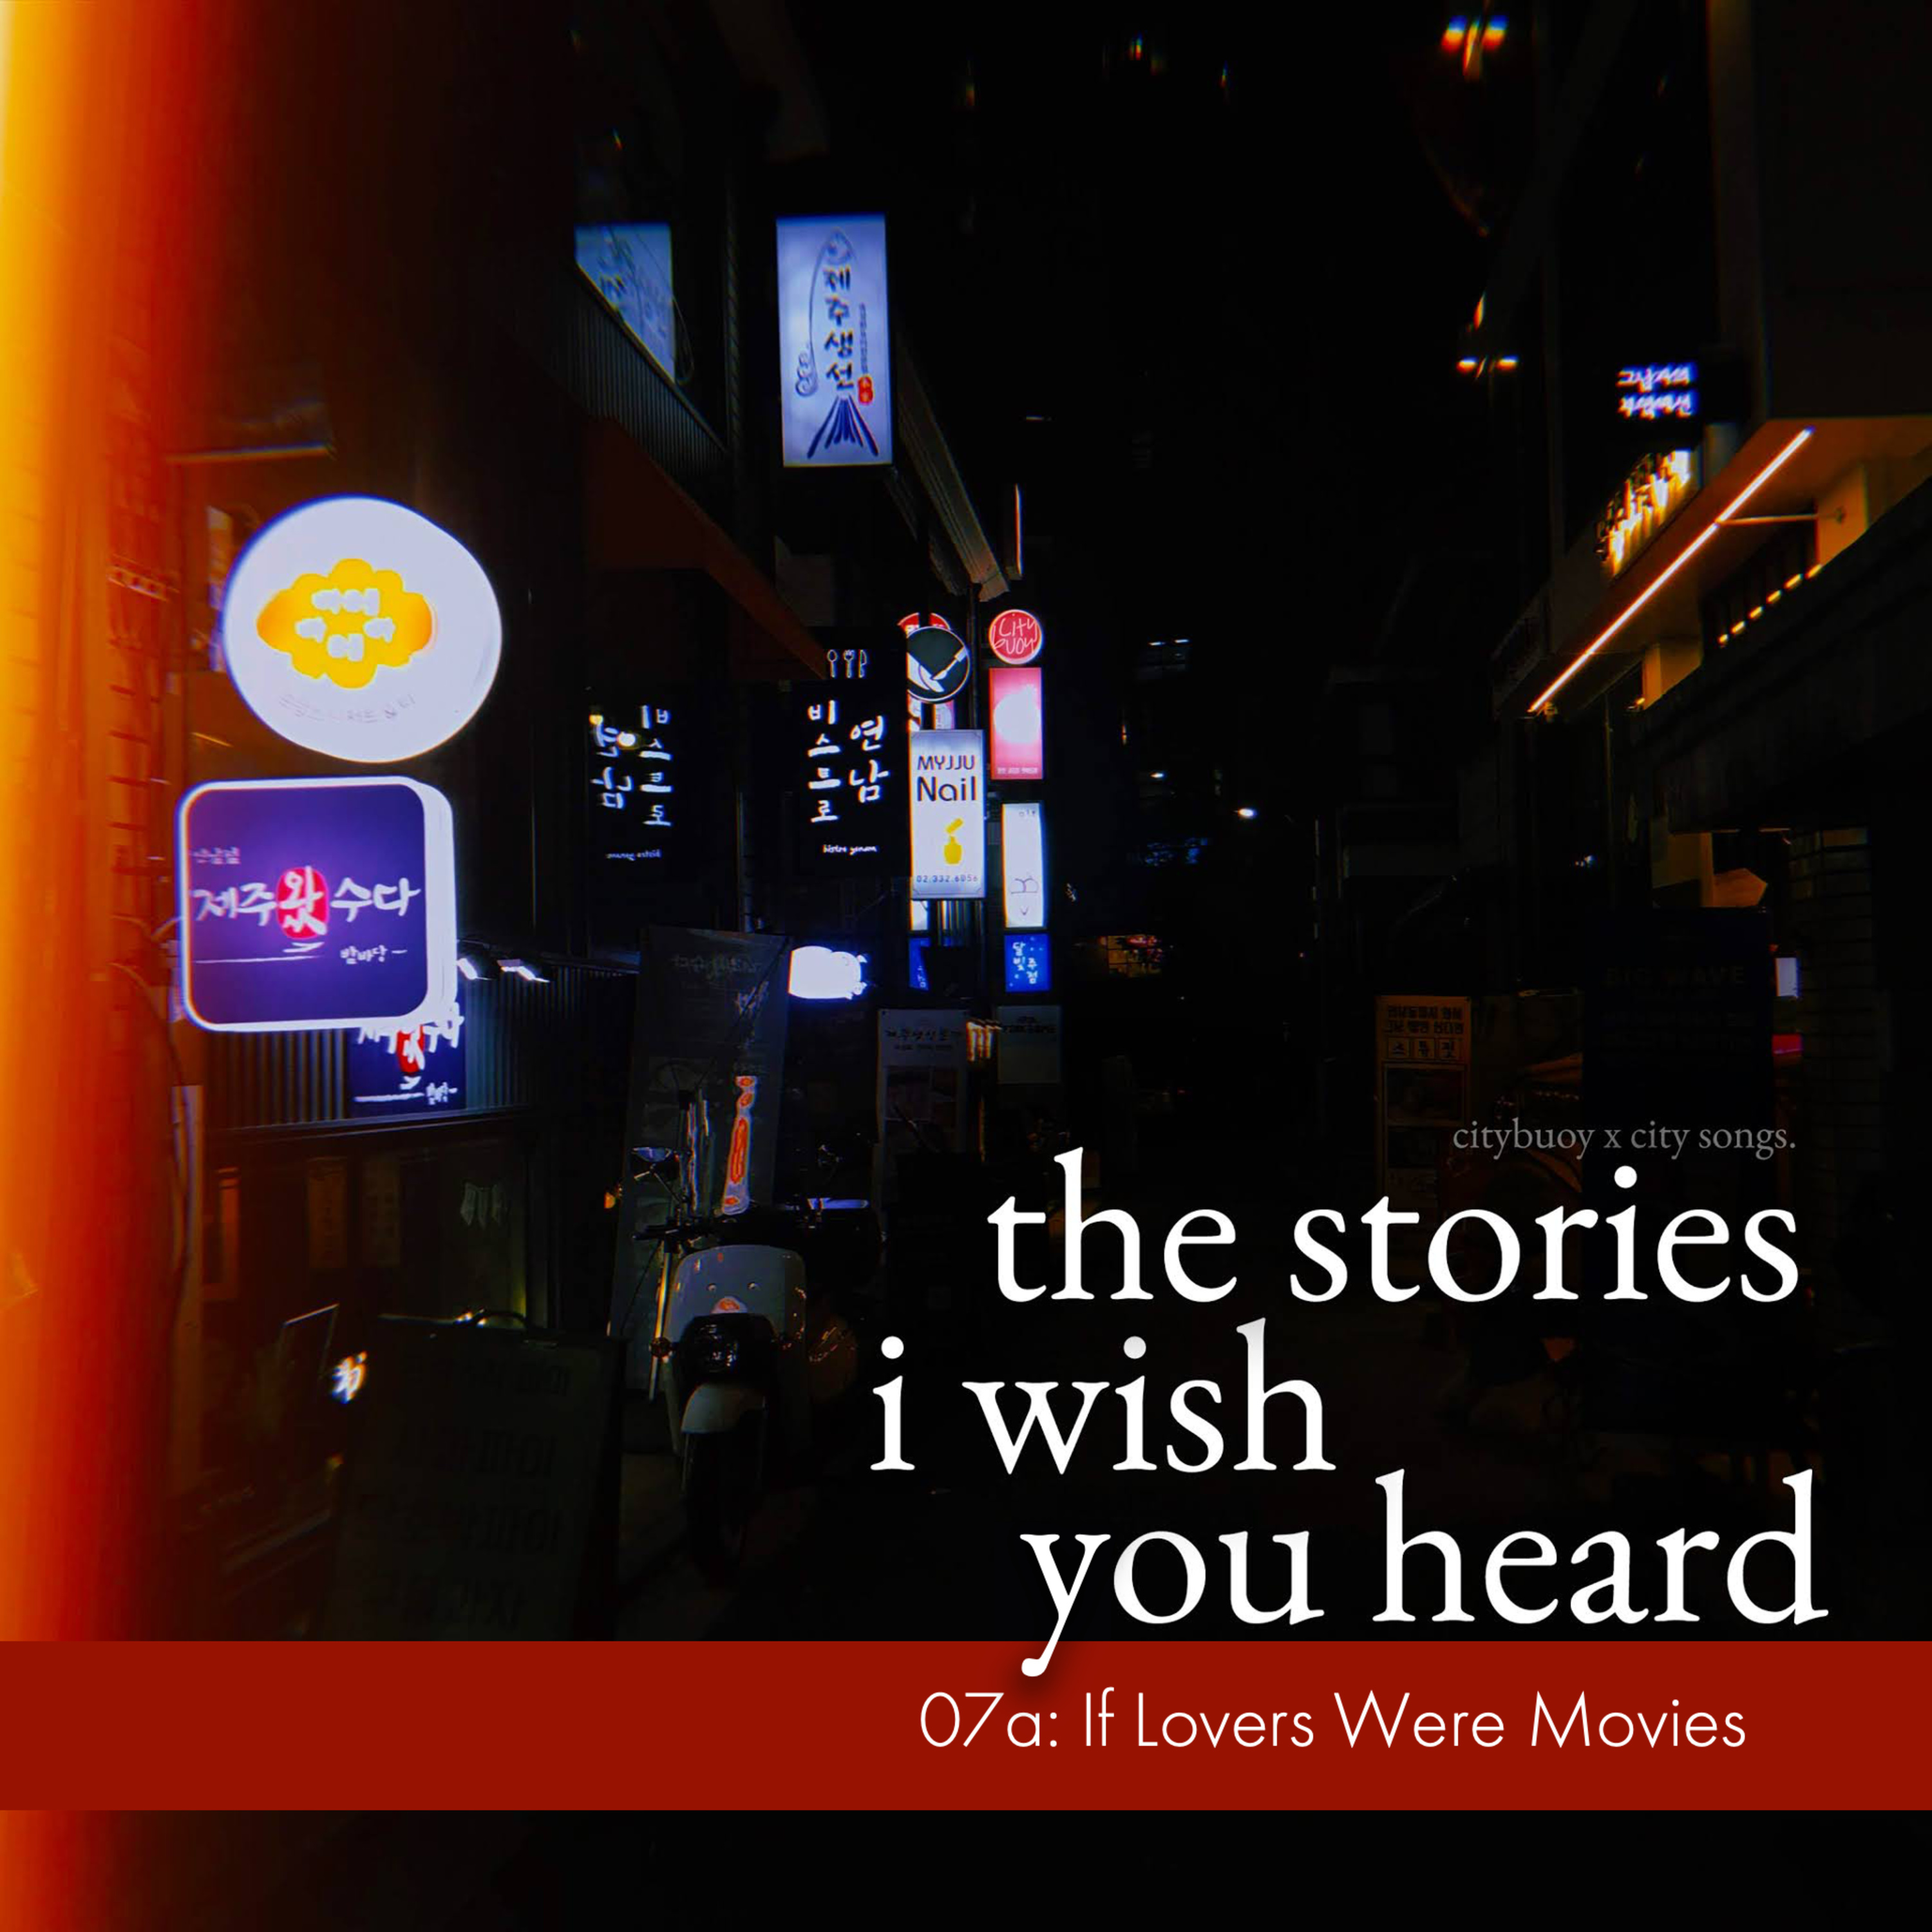 07a: If Lovers Were Movies